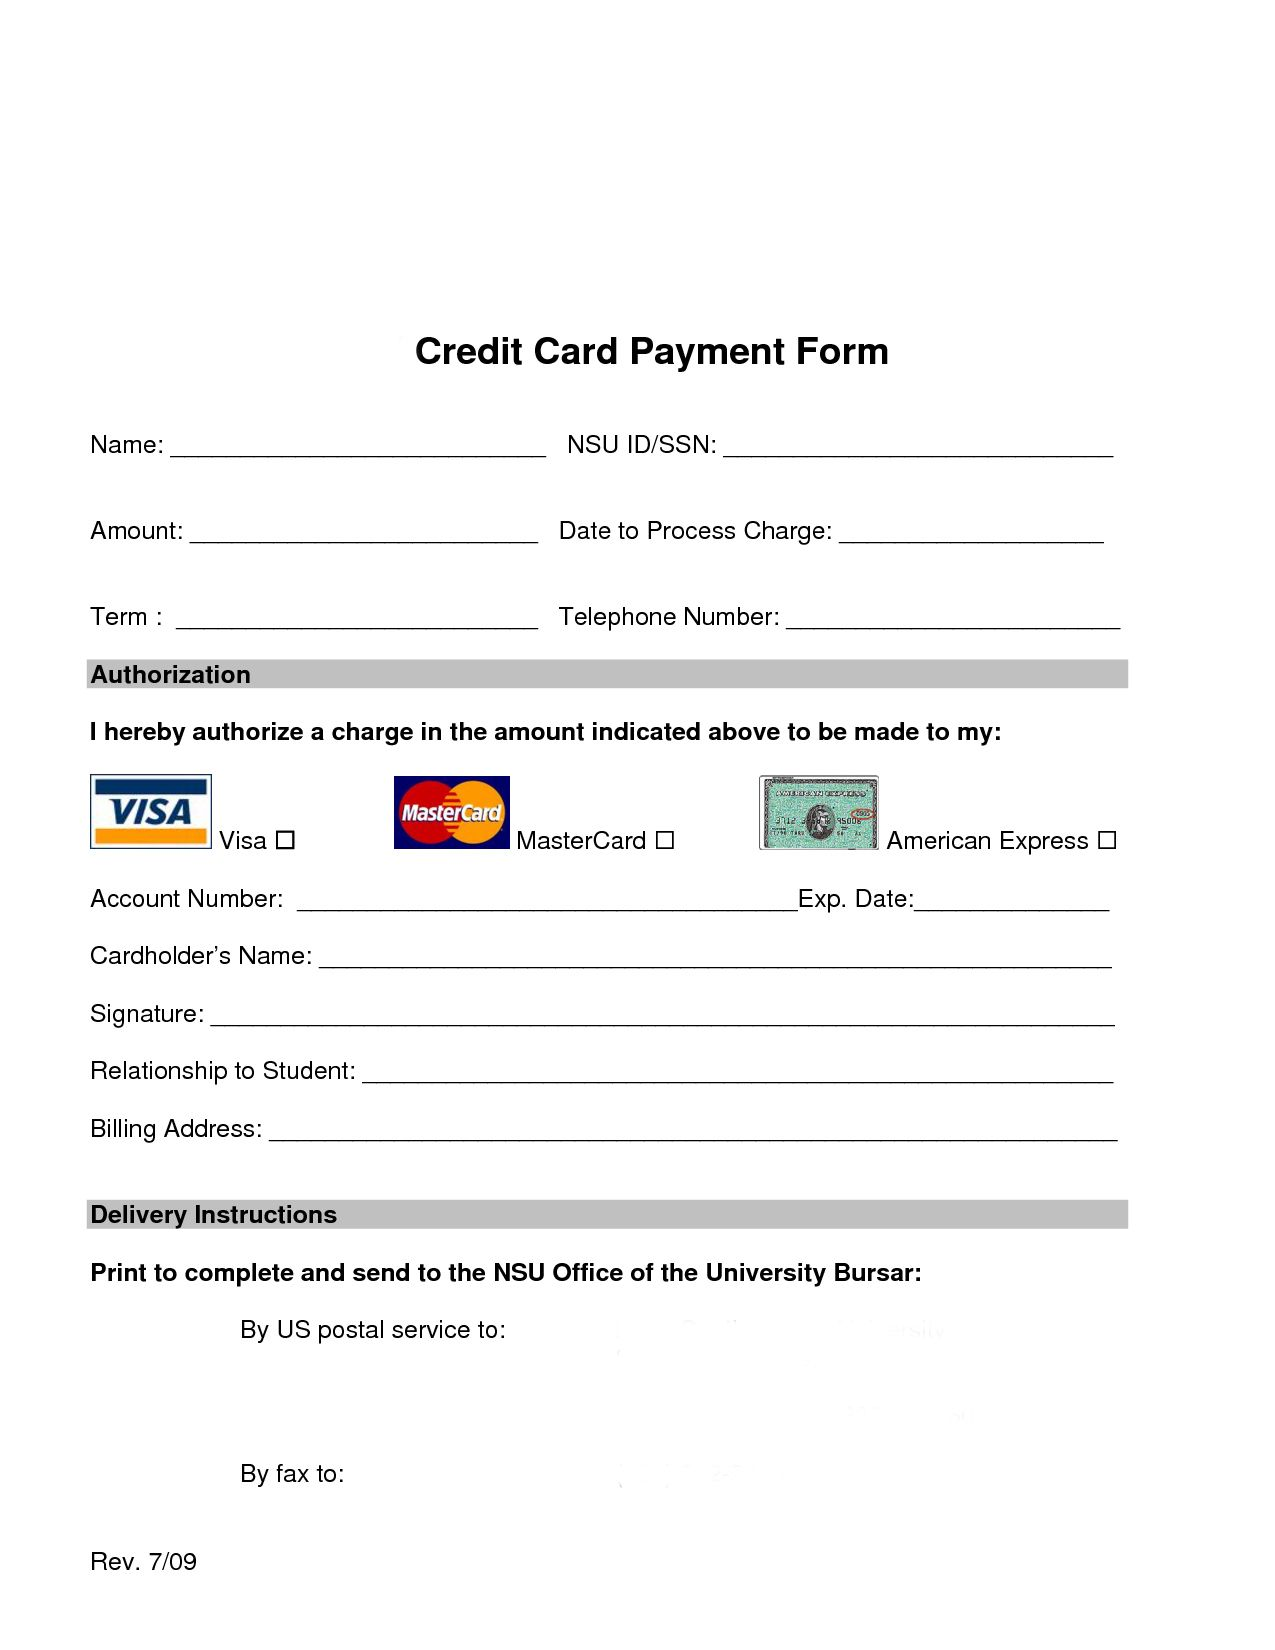 Credit card processing form web design pinterest credit card processing form nvjuhfo Gallery